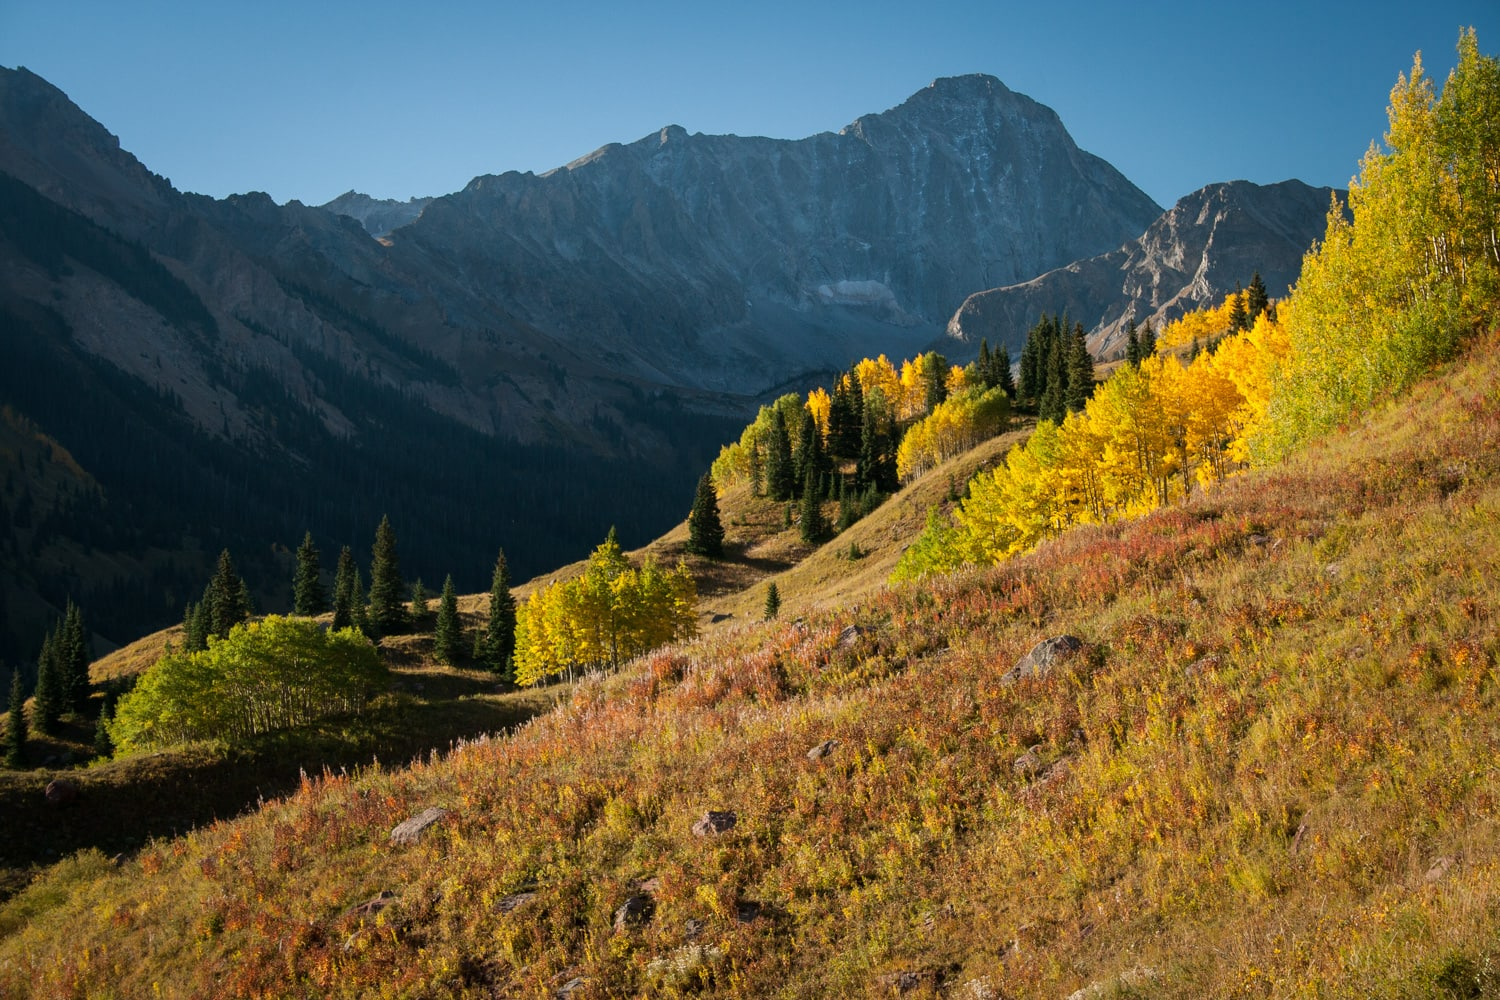 Capitol Ditch Trail - Experience the best fall colors in Colorado with this detailed road trip itinerary